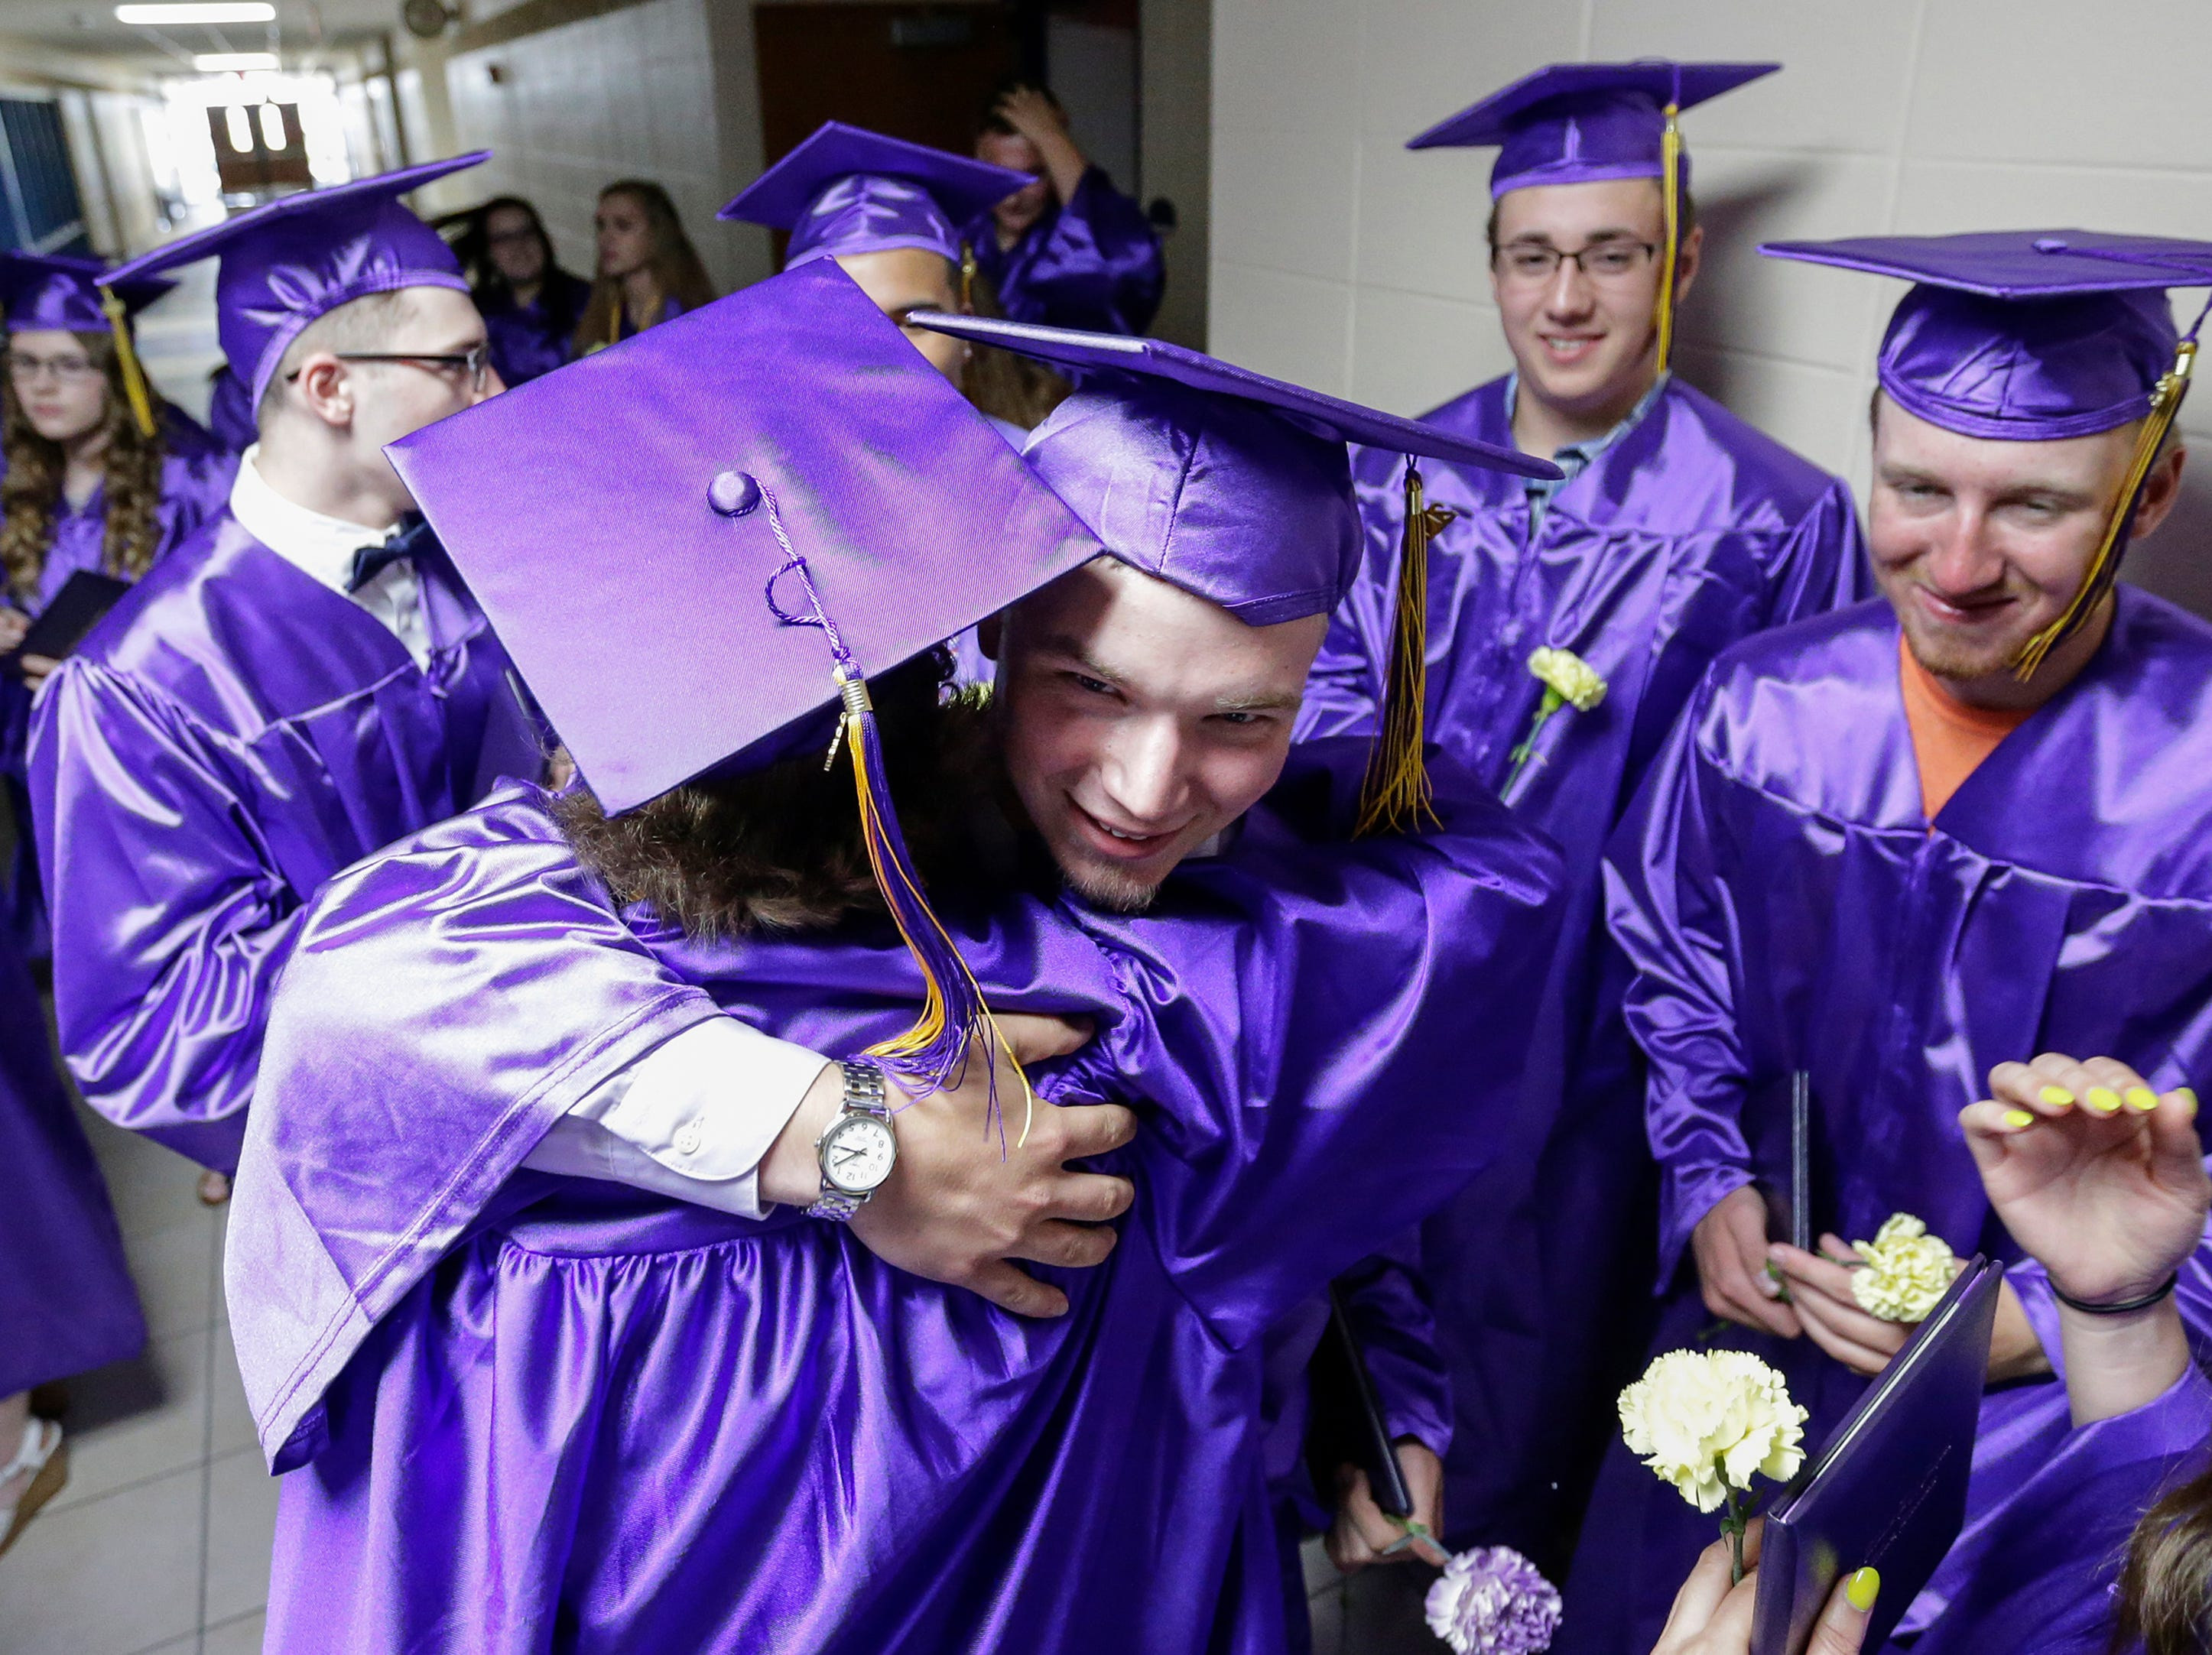 Alex Richmond hugs his fellow graduates after the graduation ceremony at Two Rivers High School Saturday, Jun 9, 2018, in Two Rivers, Wis. Josh Clark/USA TODAY NETWORK-Wisconsin